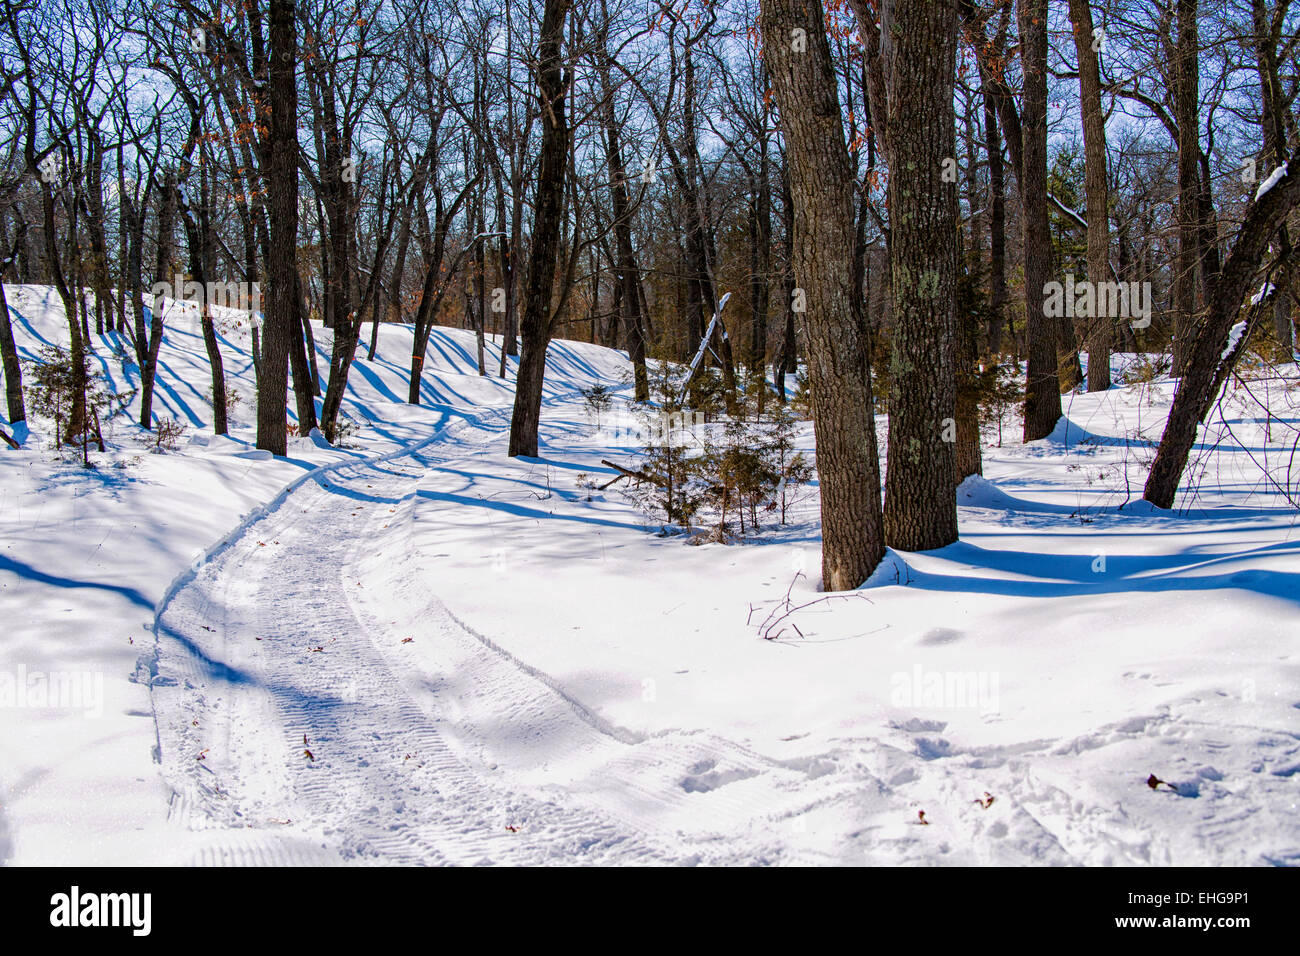 Snowmobile track in hardwood forest. - Stock Image